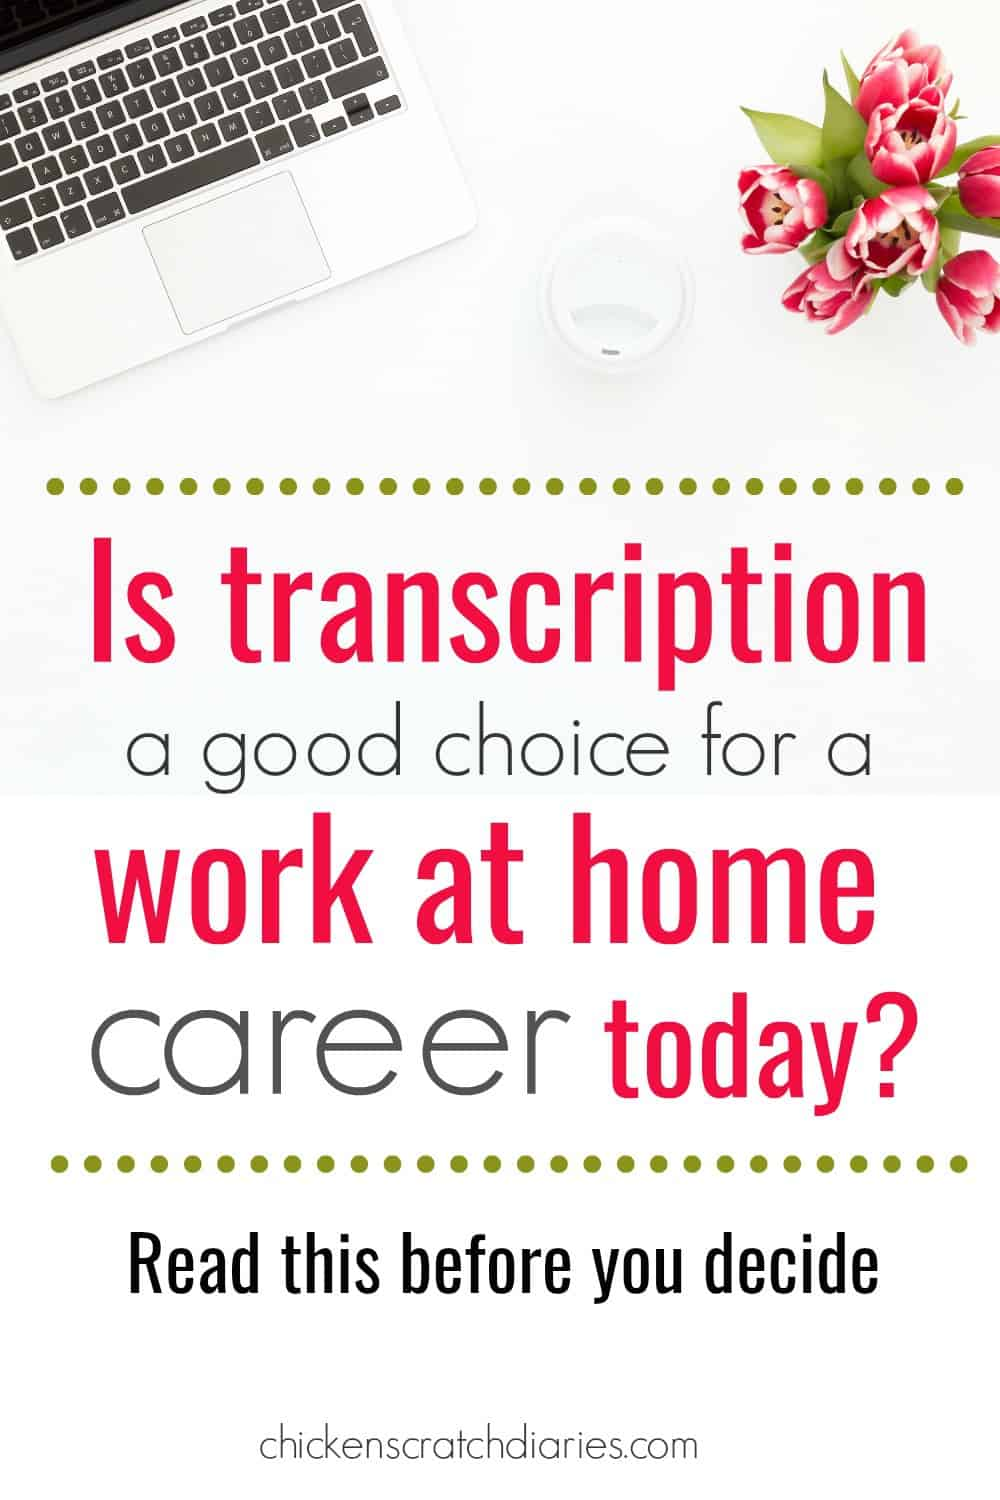 Legitimate work at home job opportunities - is Transcription one of them? Very helpful post that explores this career! #WorkAtHome #Transcription #MakeMoneyOnline